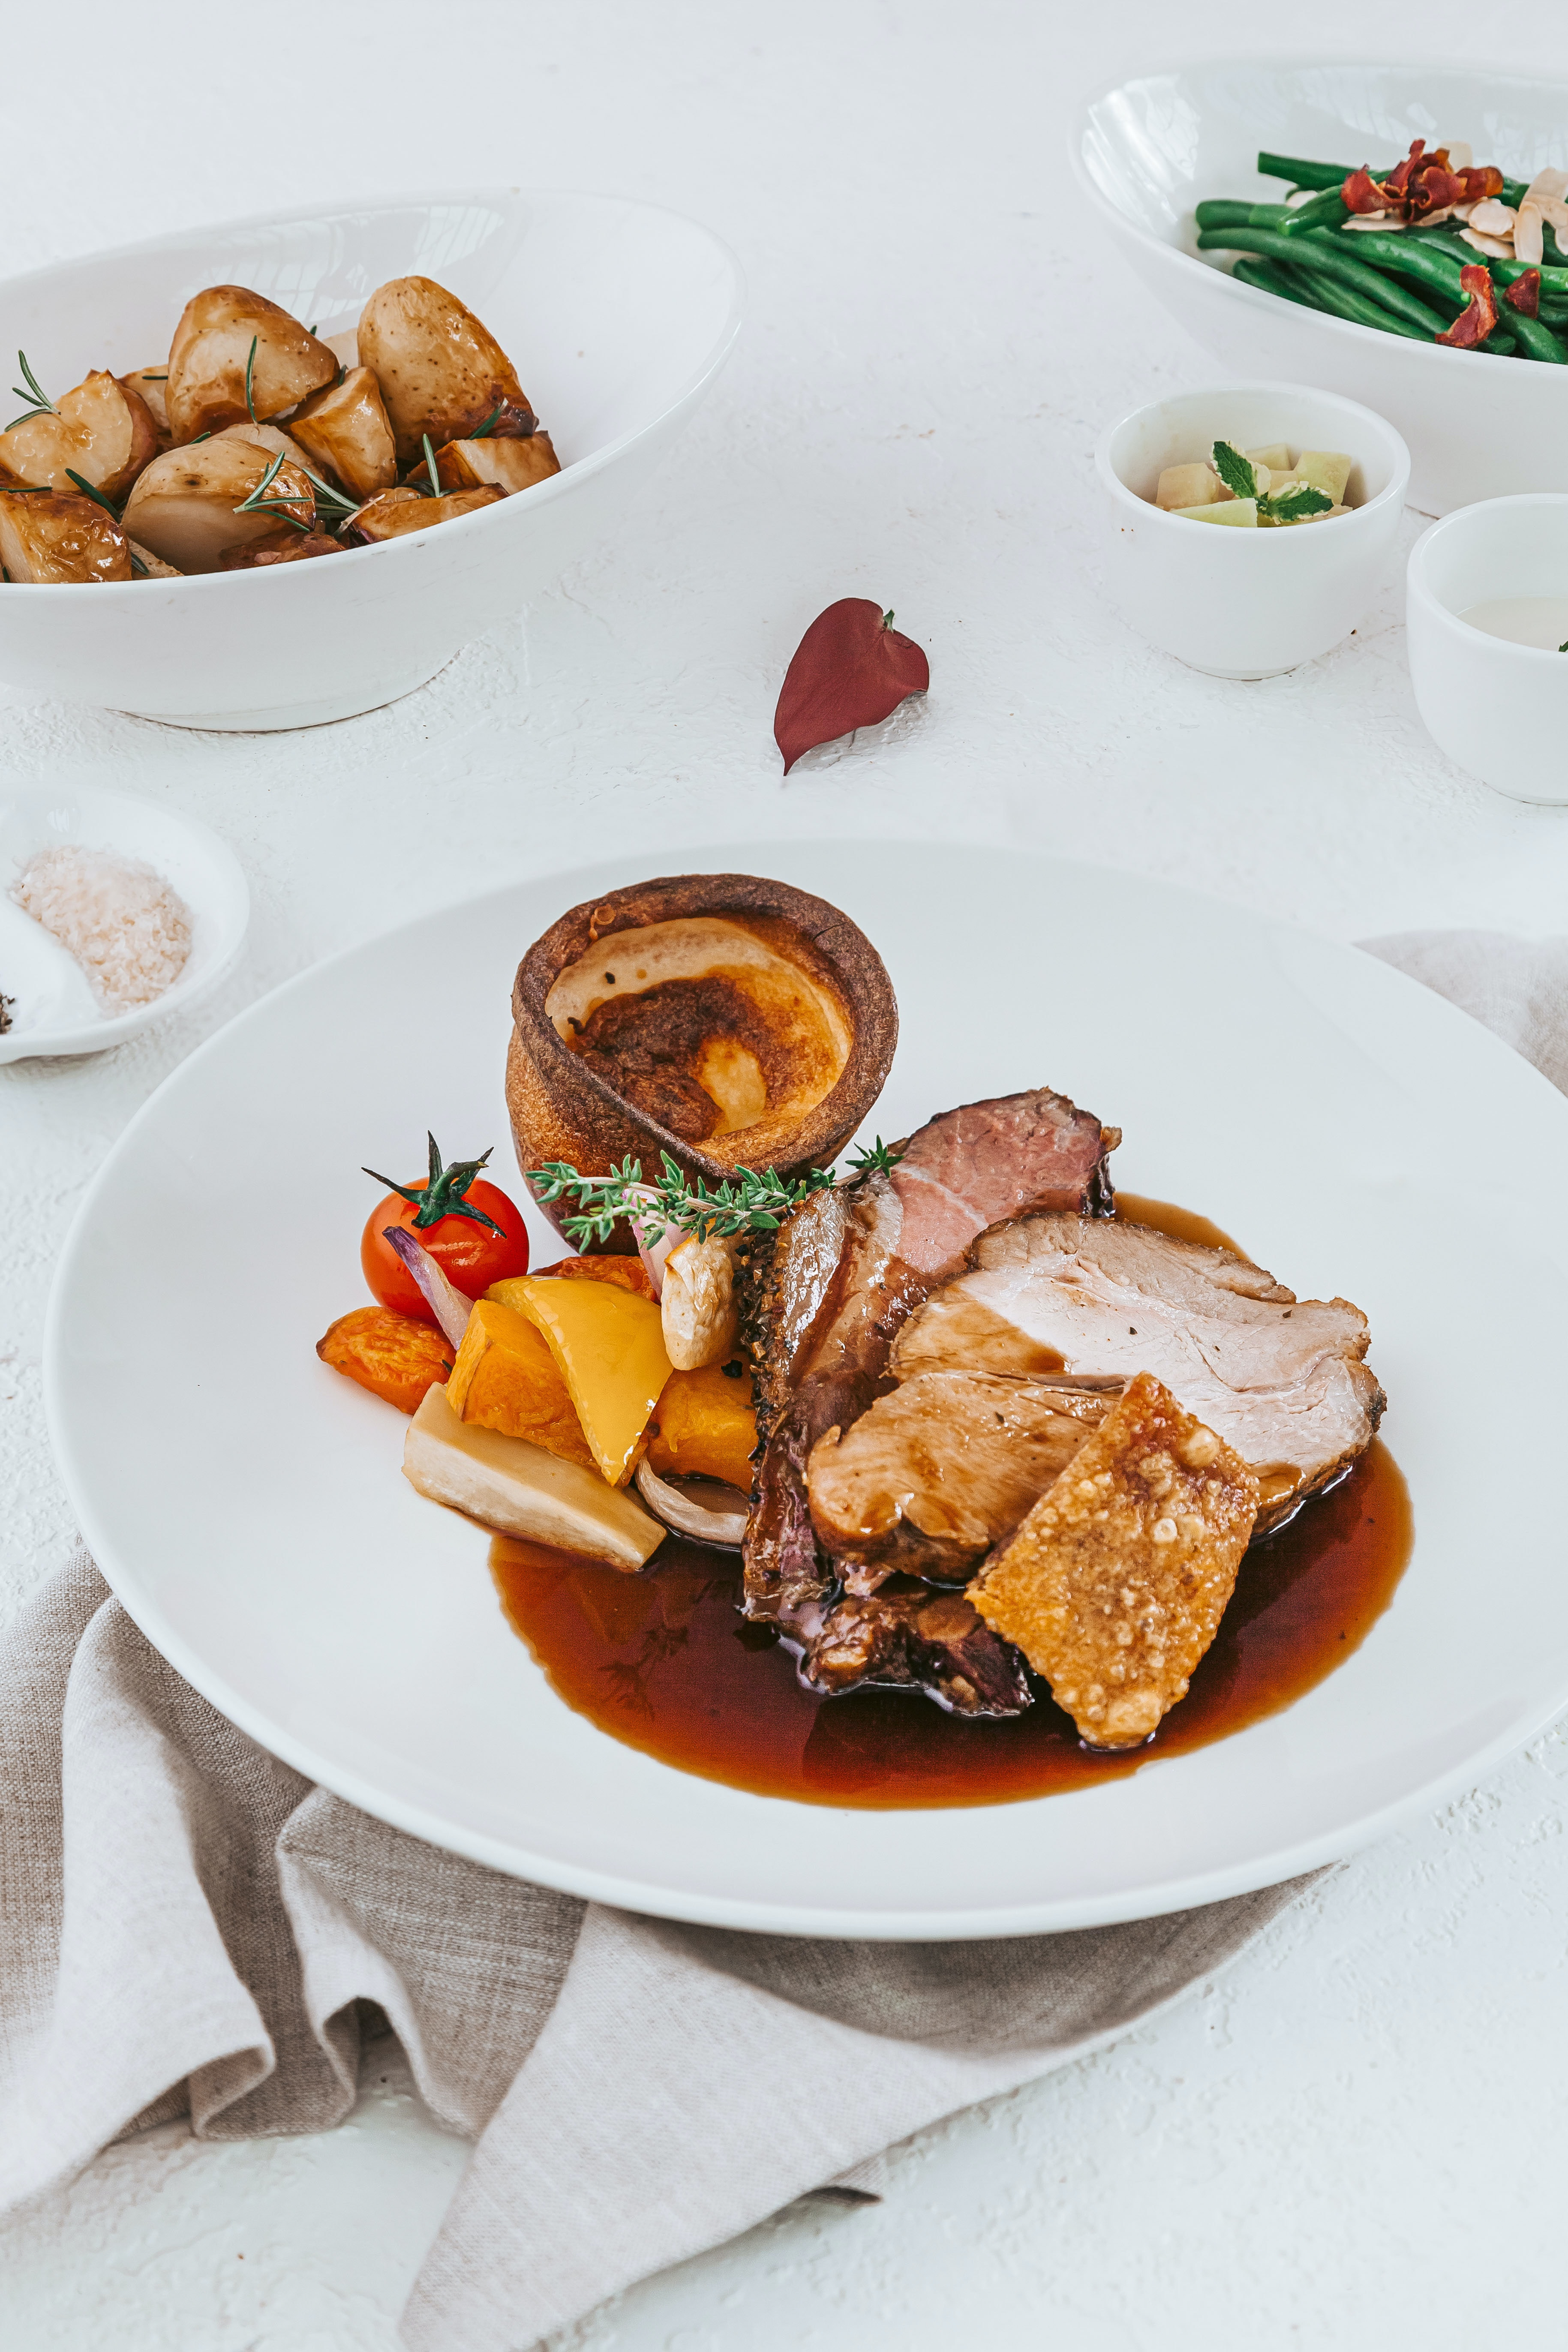 Roast pork served on a plate with Yorkshire pudding and gravy